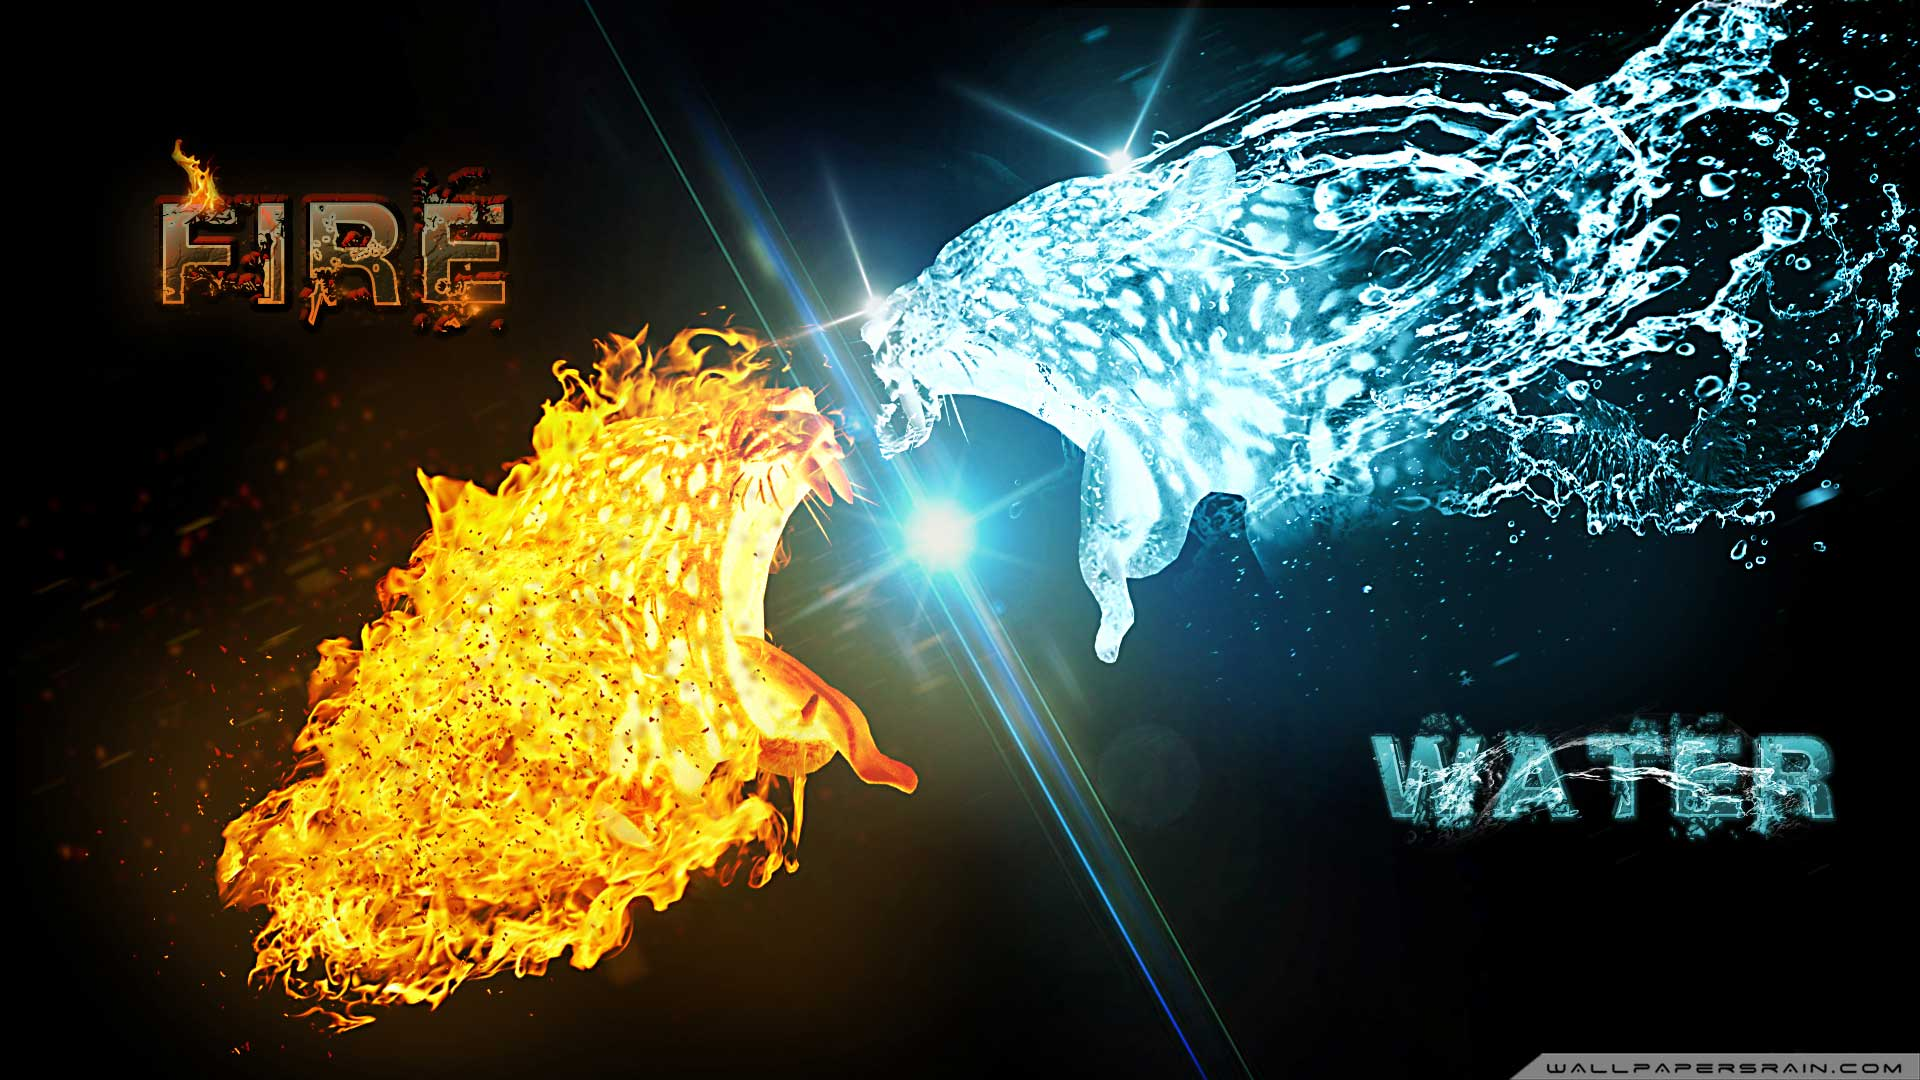 400 Pixels Wide Wallpapers Of Cars Fire Vs Water Wallpapers Wallpaper Cave